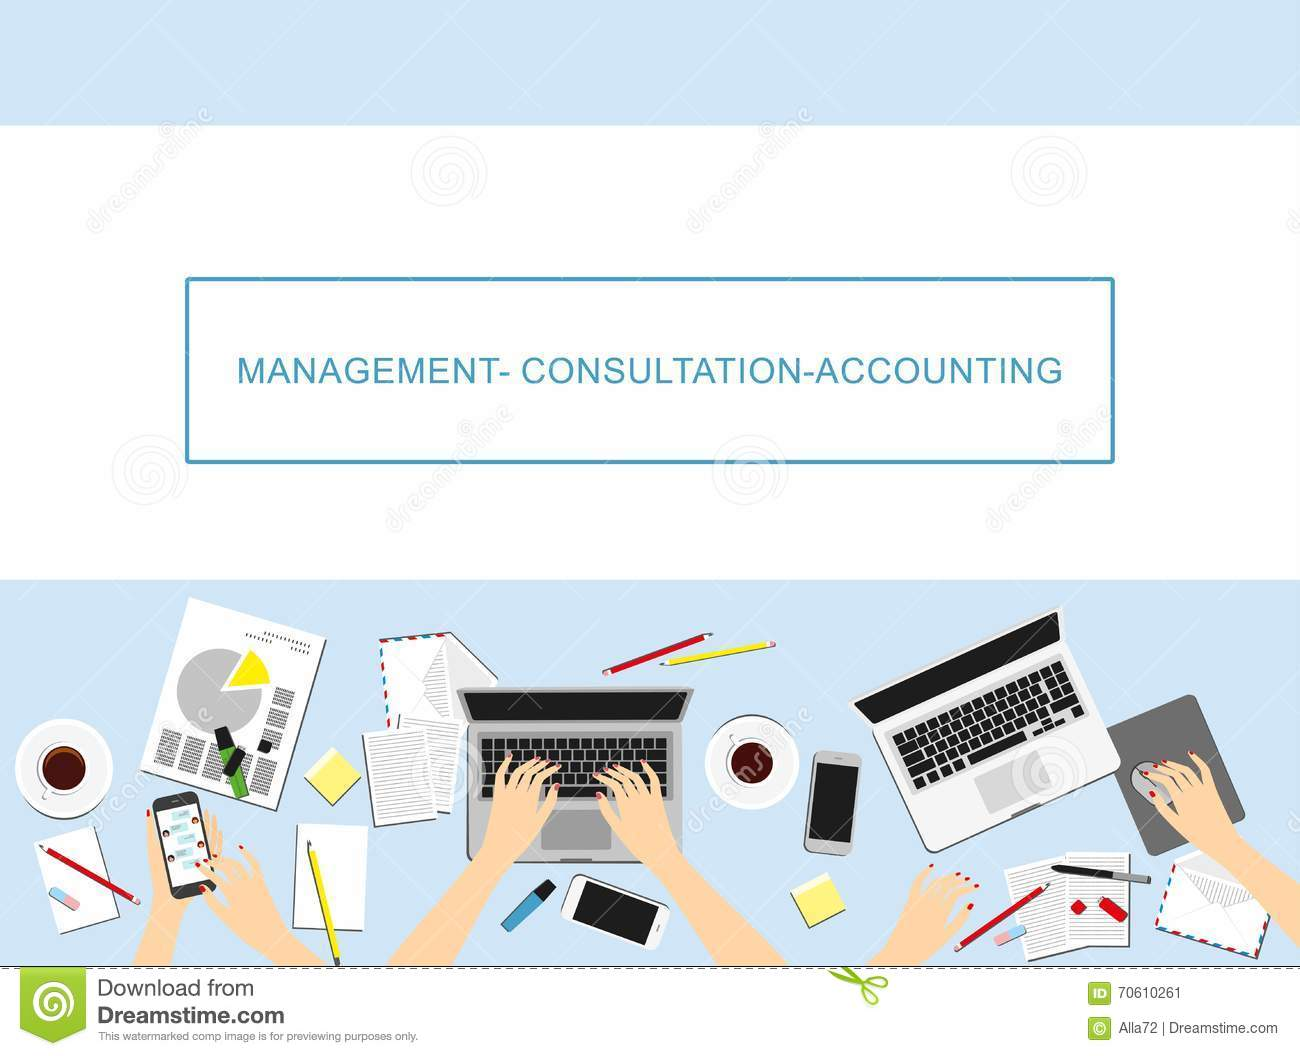 managerial accounting marketing management This module provides an understanding of key issues and applied methodologies relating to management accounting frameworks used by managers when faced with making financial decisions in the context of the business environment.